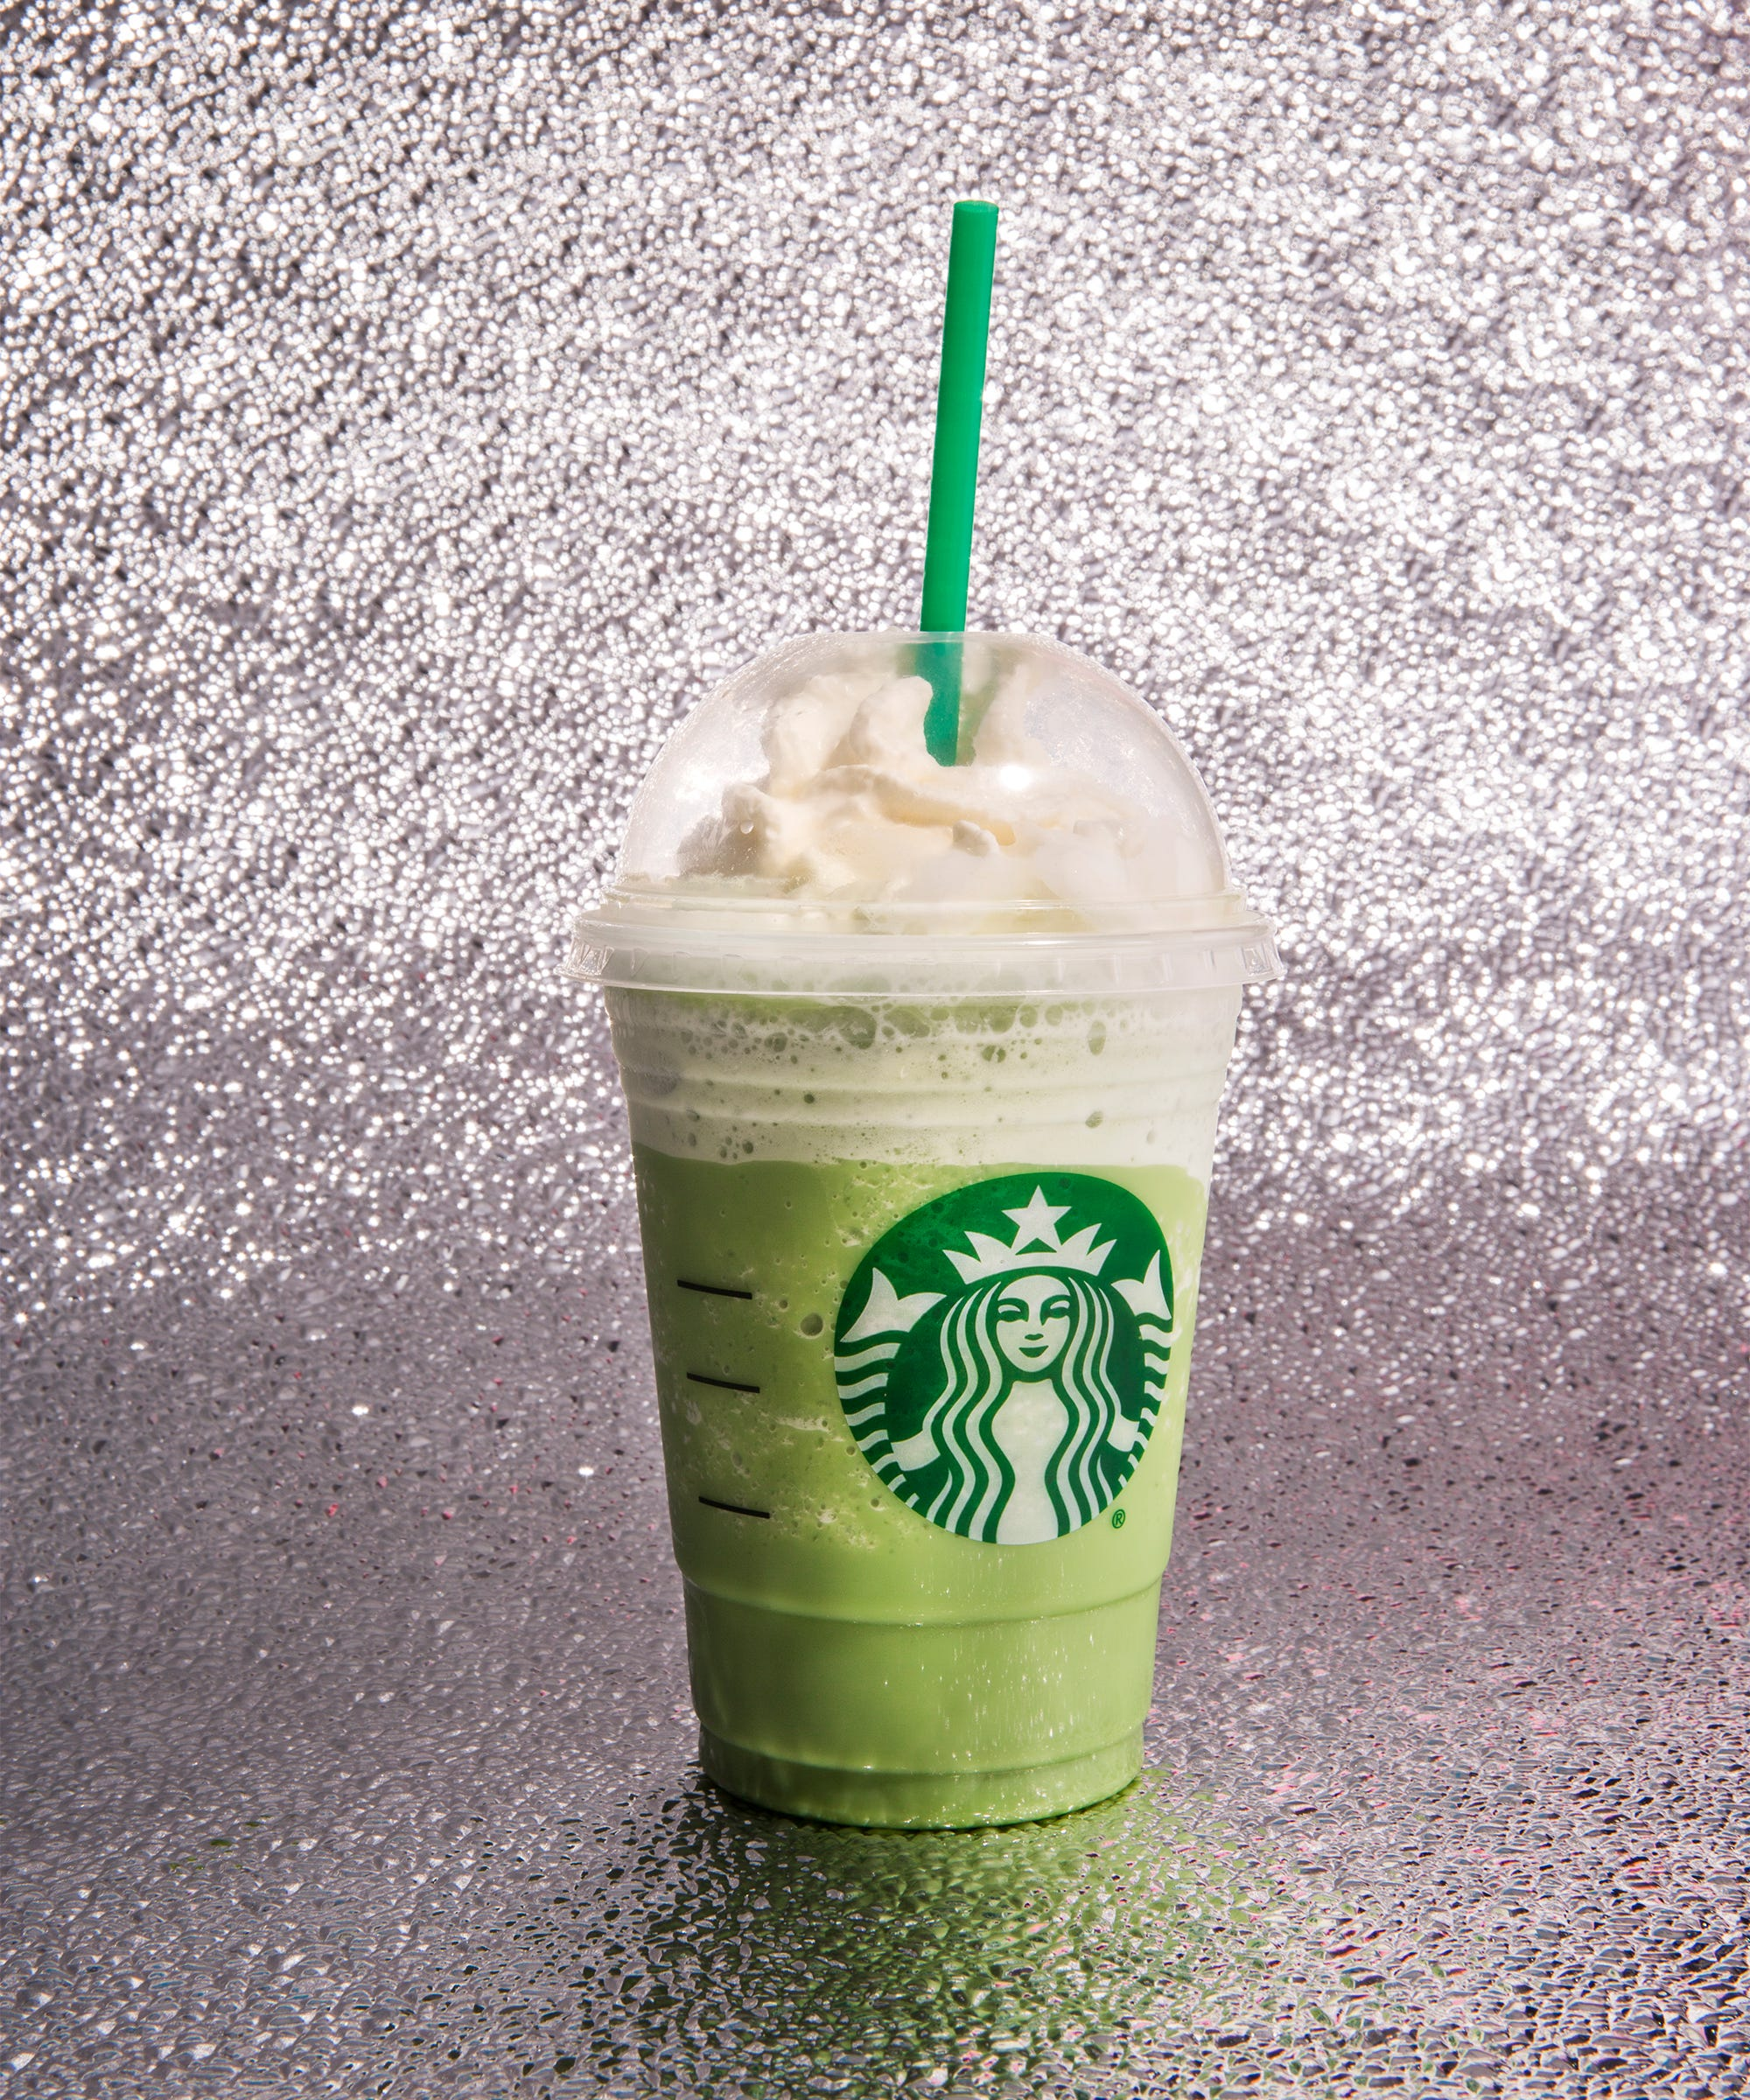 Starbucks Is Having A Frappuccino Happy Hour Right This Second